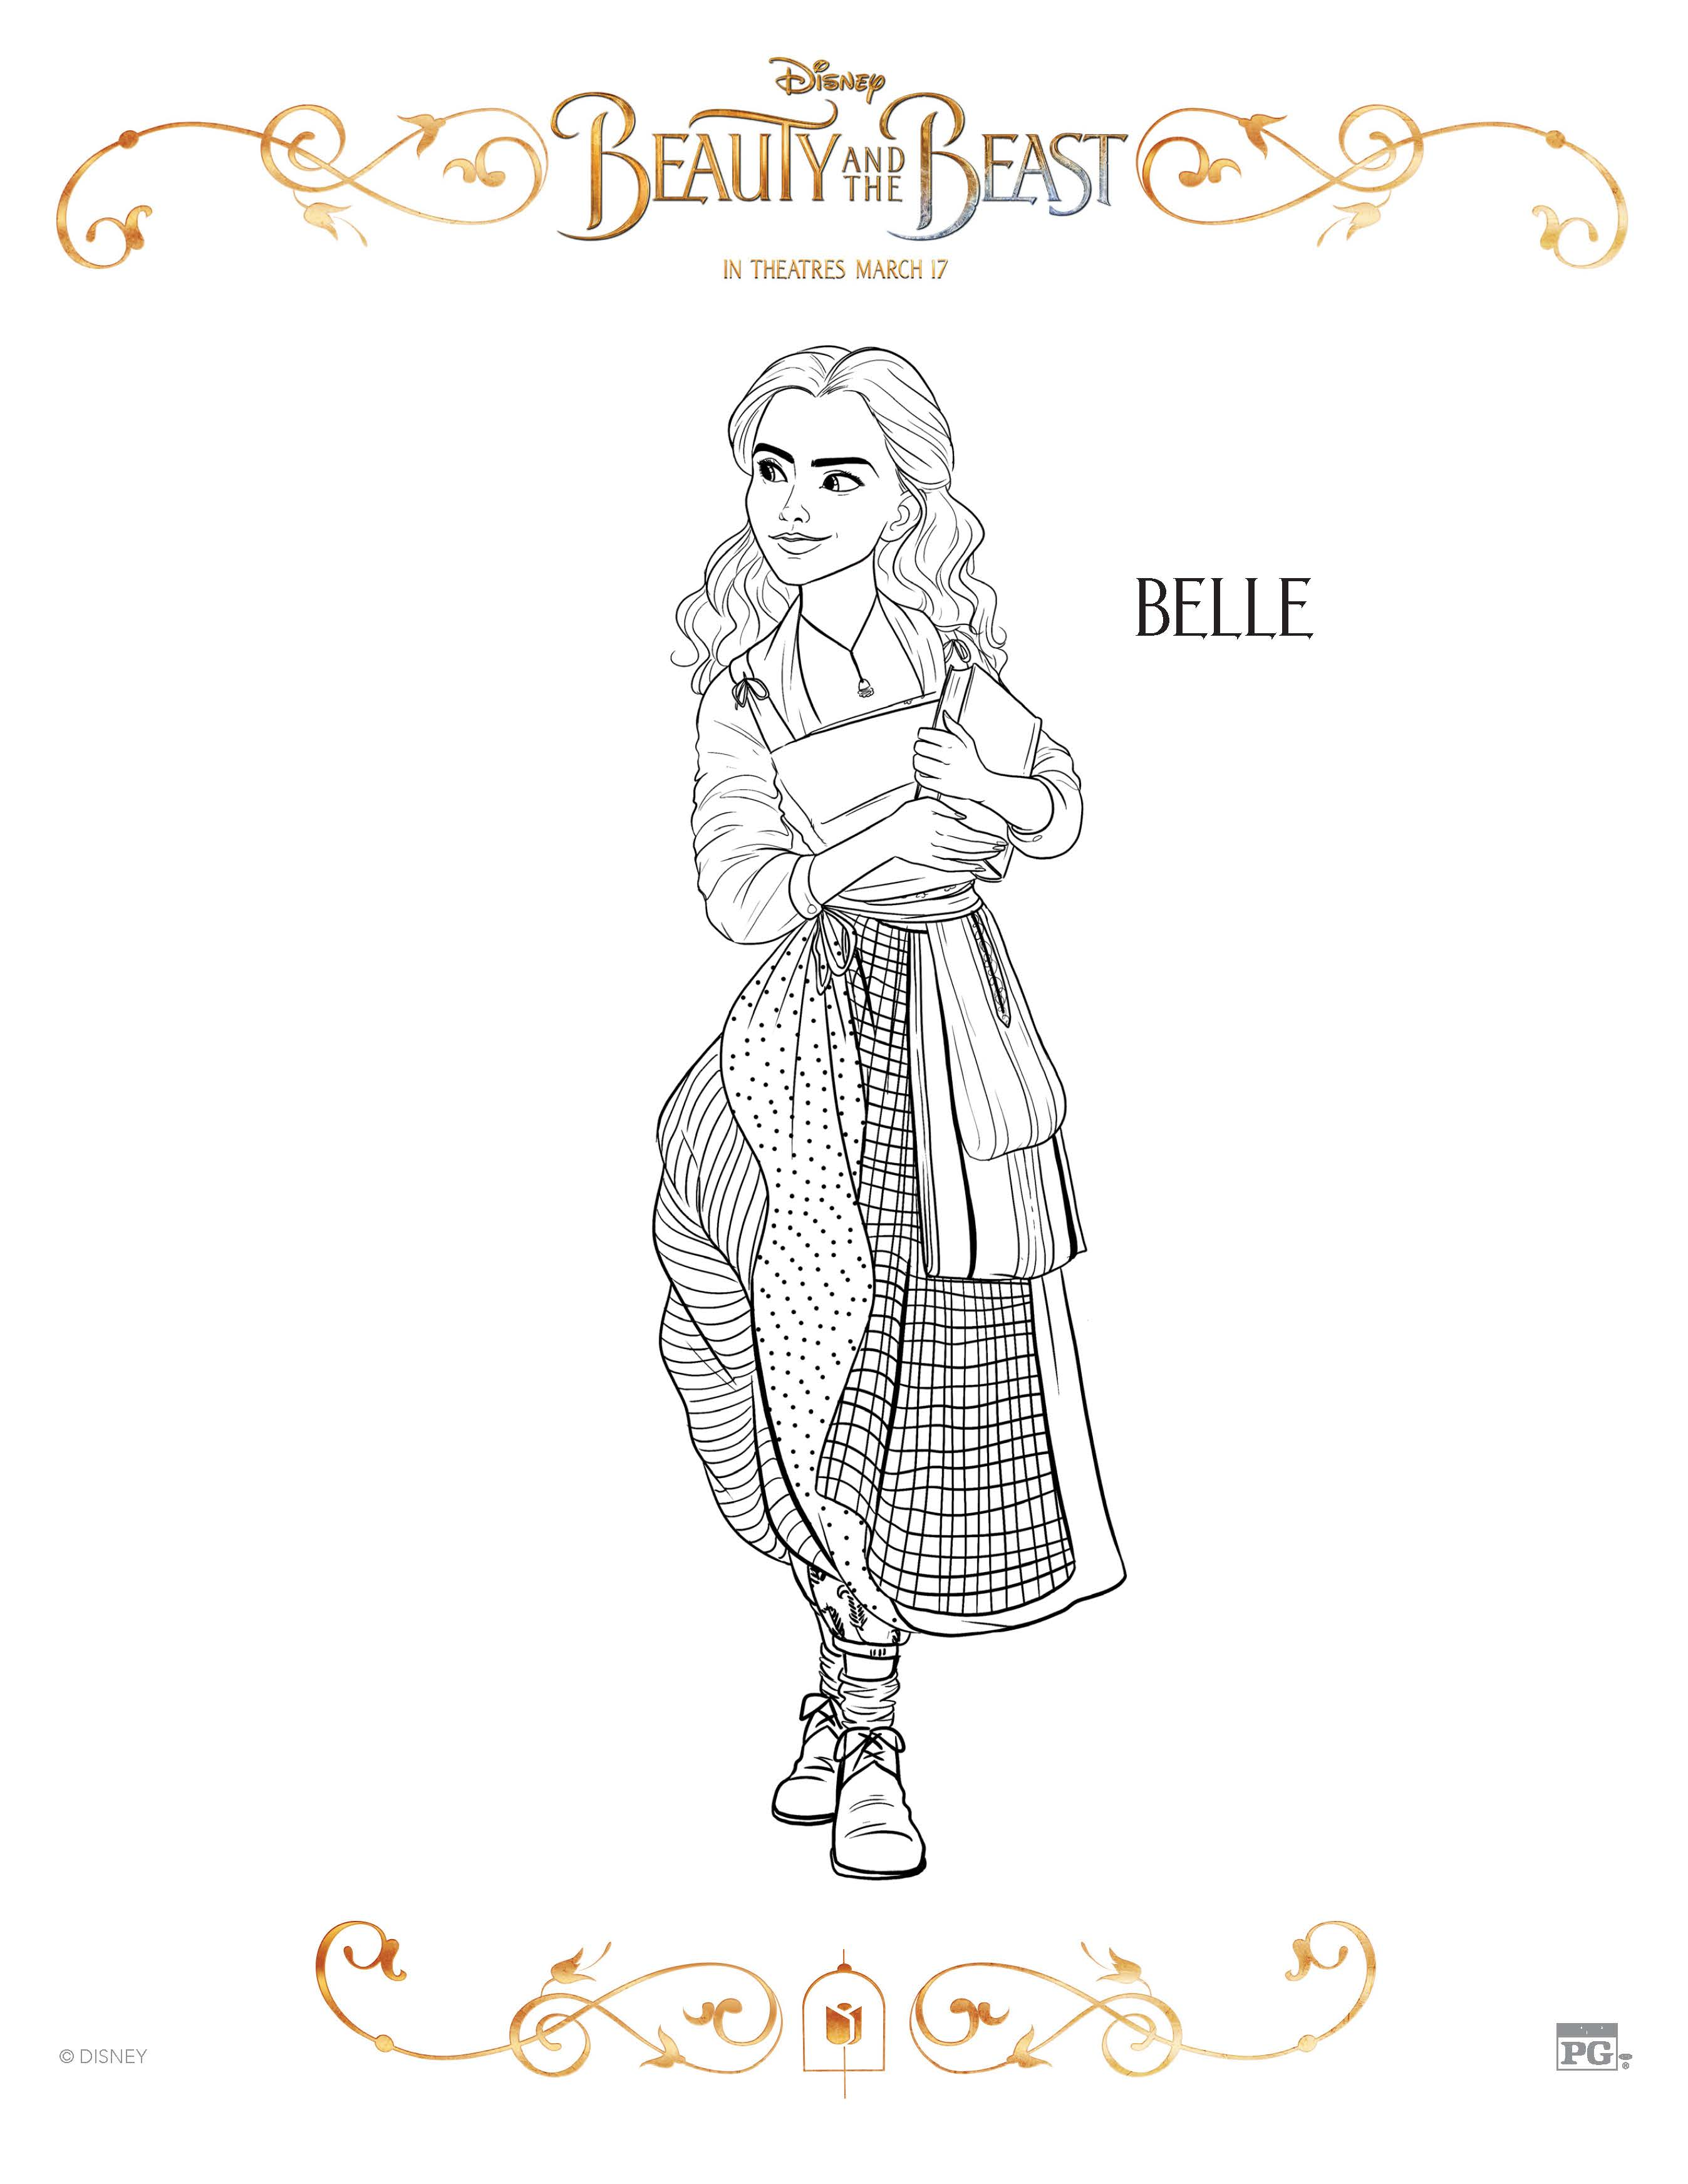 Coloring book pages beauty and the beast - Beauty And The Beast Belle